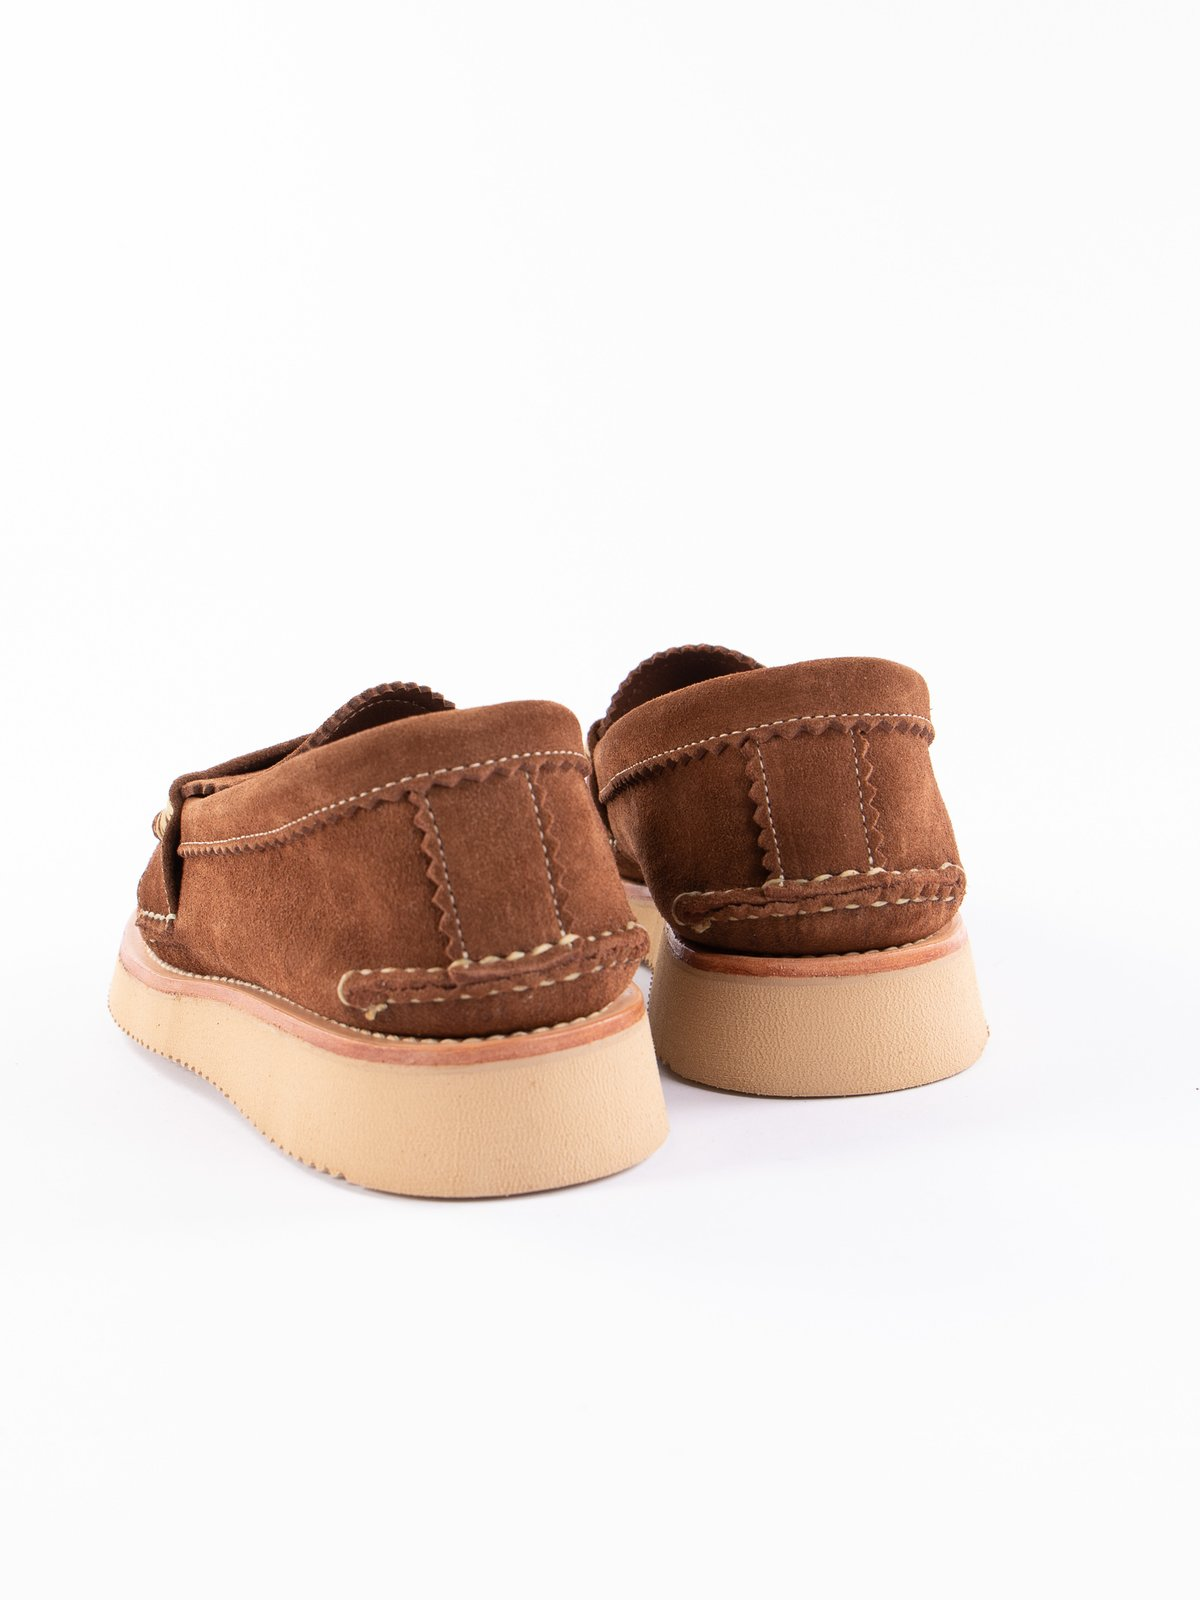 FO Snuff Loafer w/2021 Sole Exclusive - Image 5